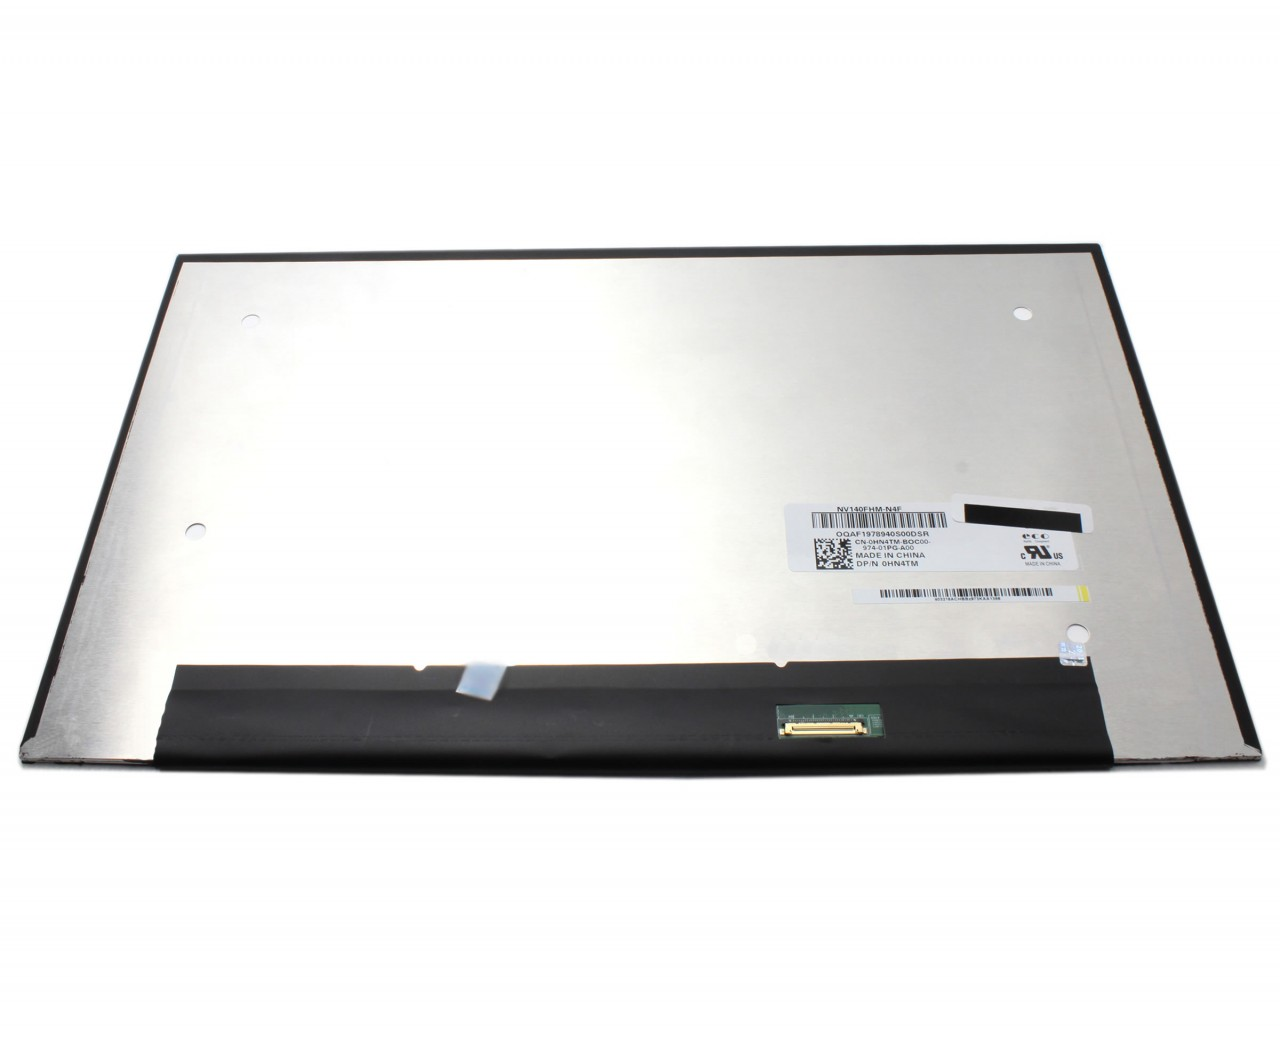 Display laptop Dell Latitude P98G001 Ecran 14.0 1920x1080 30 pinni eDP imagine powerlaptop.ro 2021